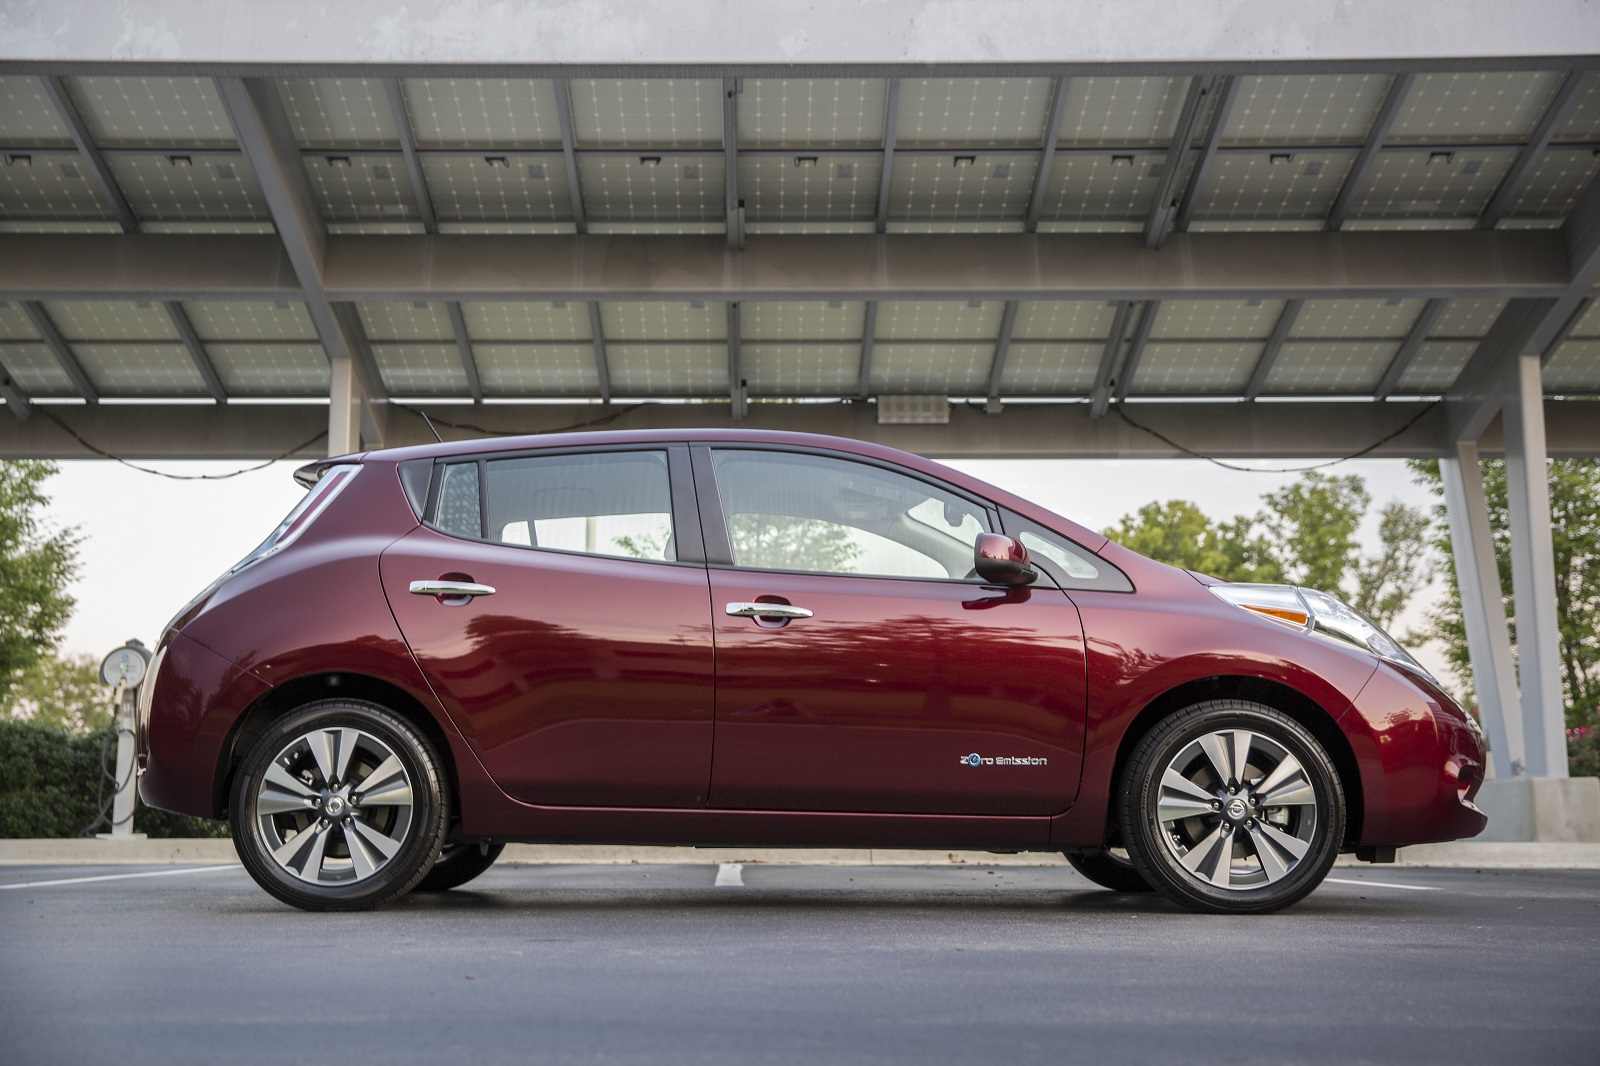 nissan leaf s quietly gets 30 kwh battery upgrade higher price. Black Bedroom Furniture Sets. Home Design Ideas